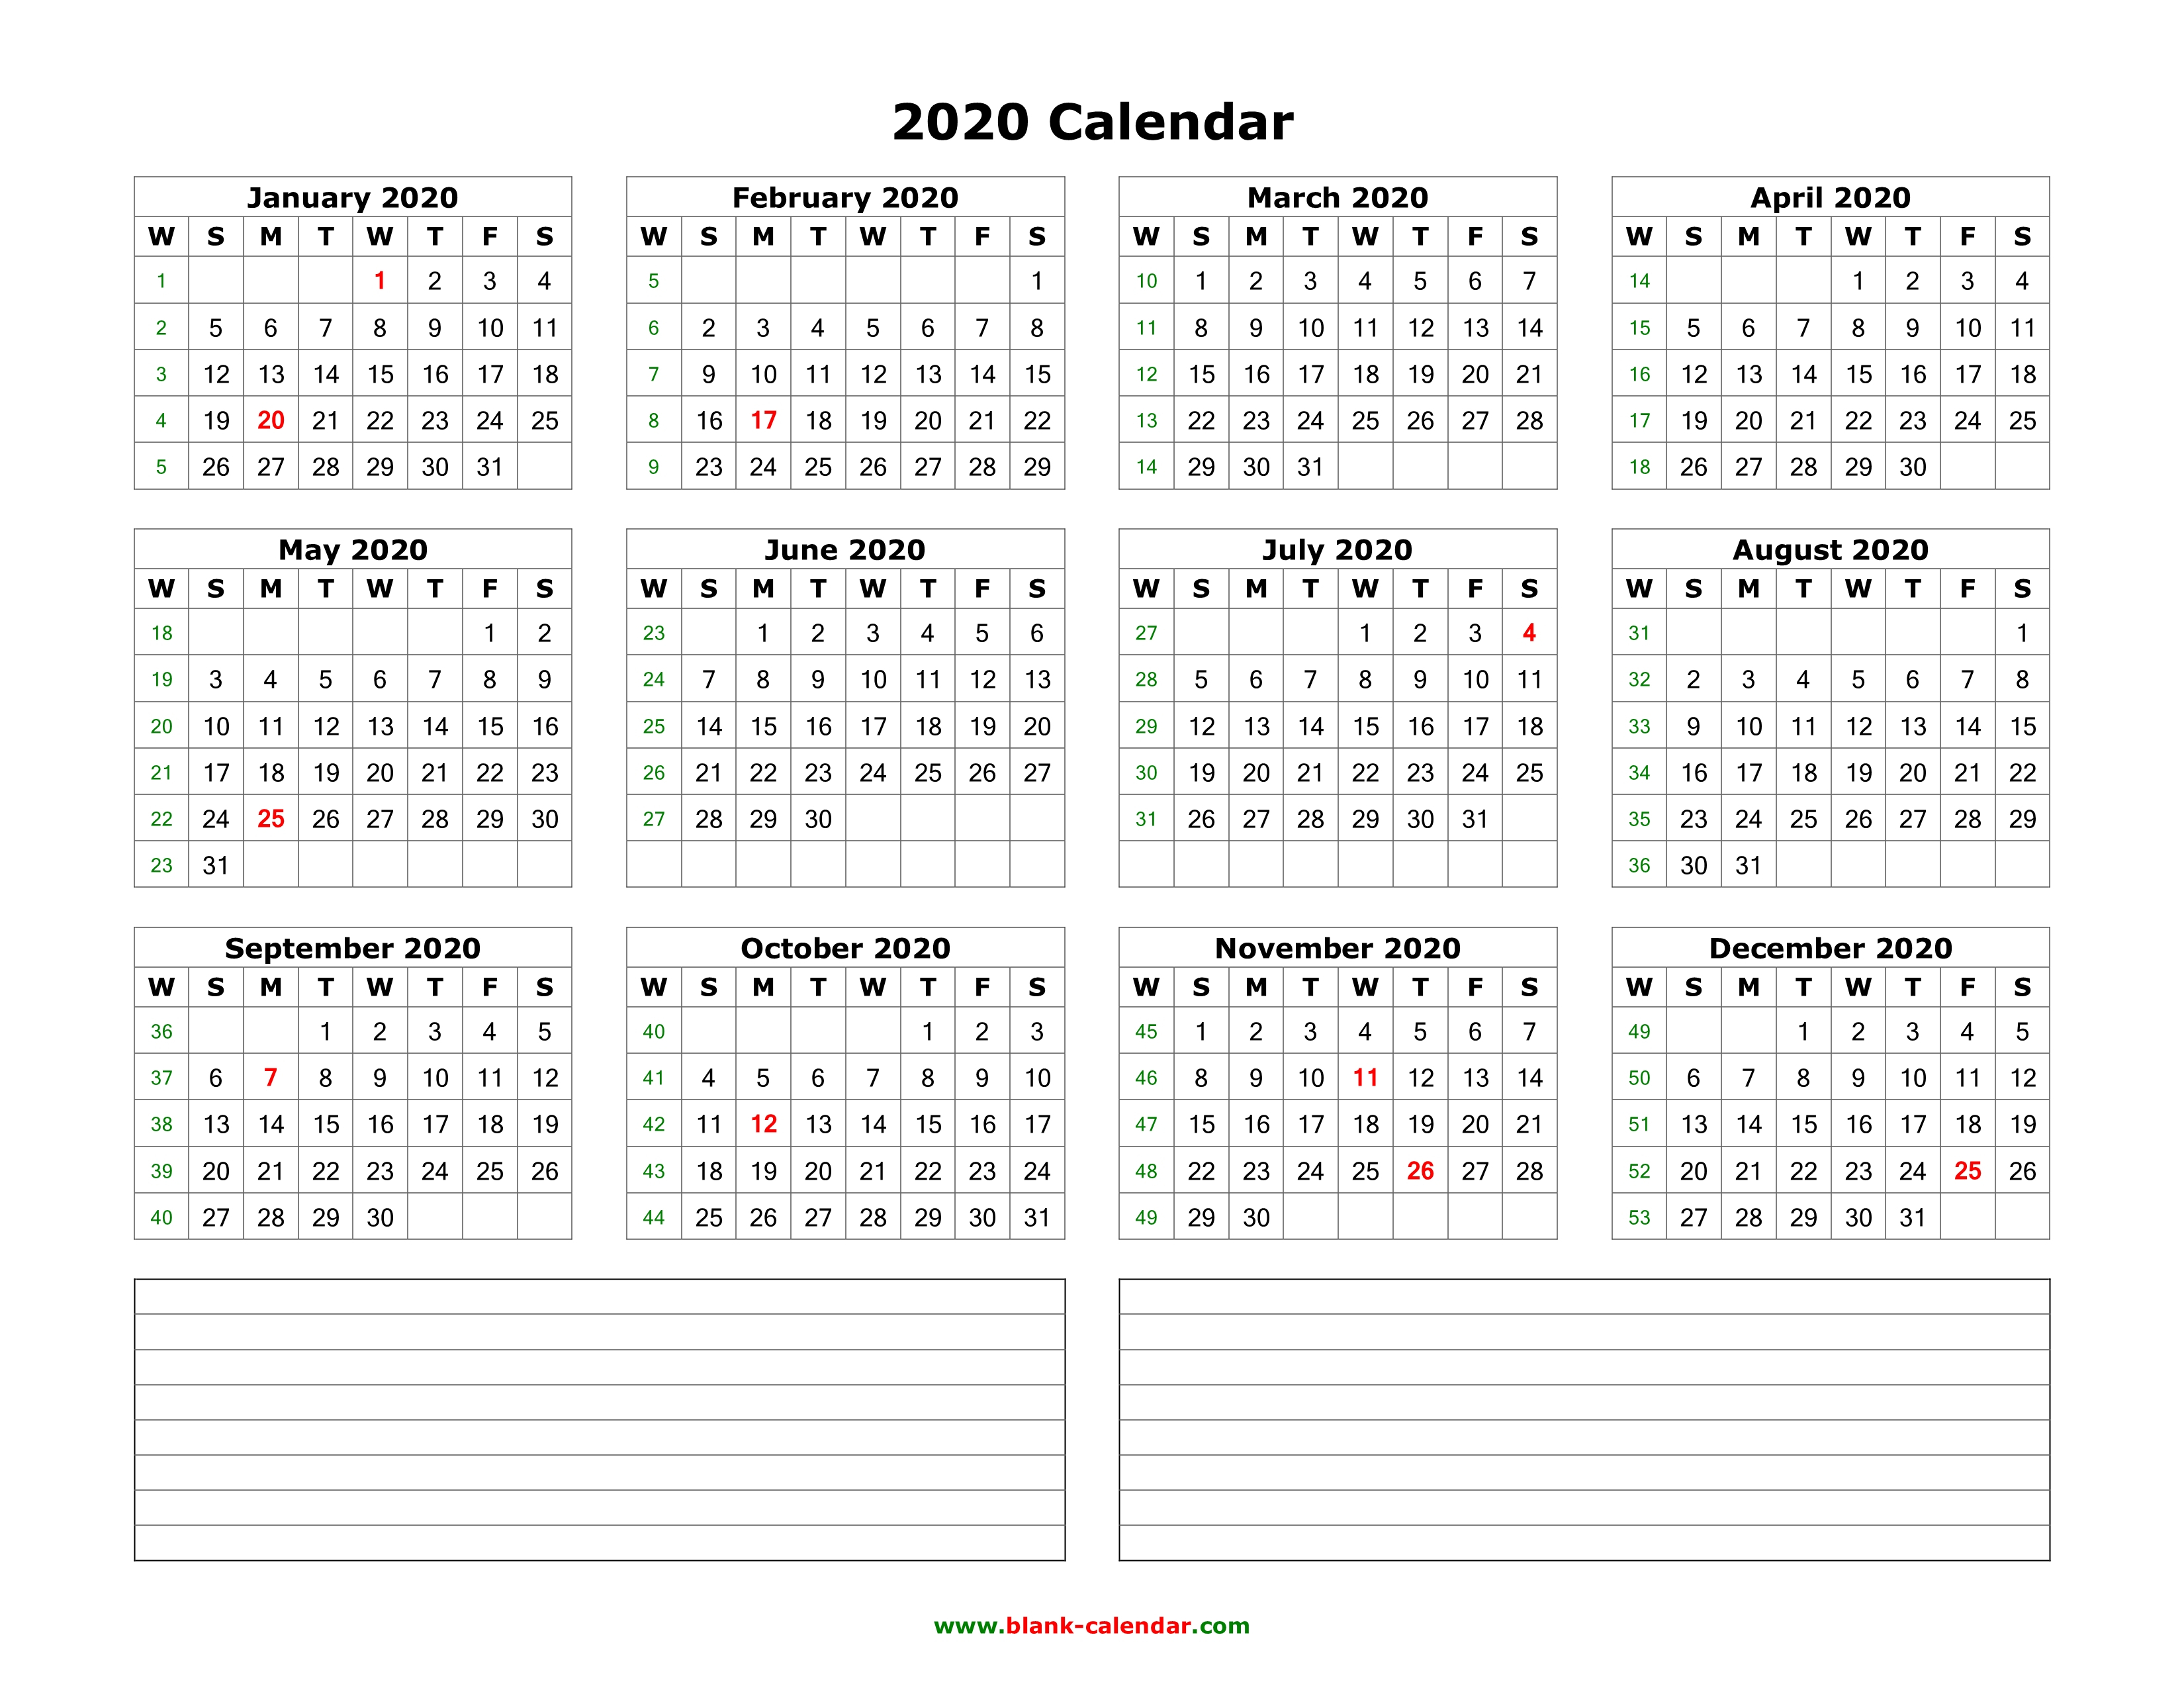 Download Blank Calendar 2020 With Space For Notes (12 Months On One